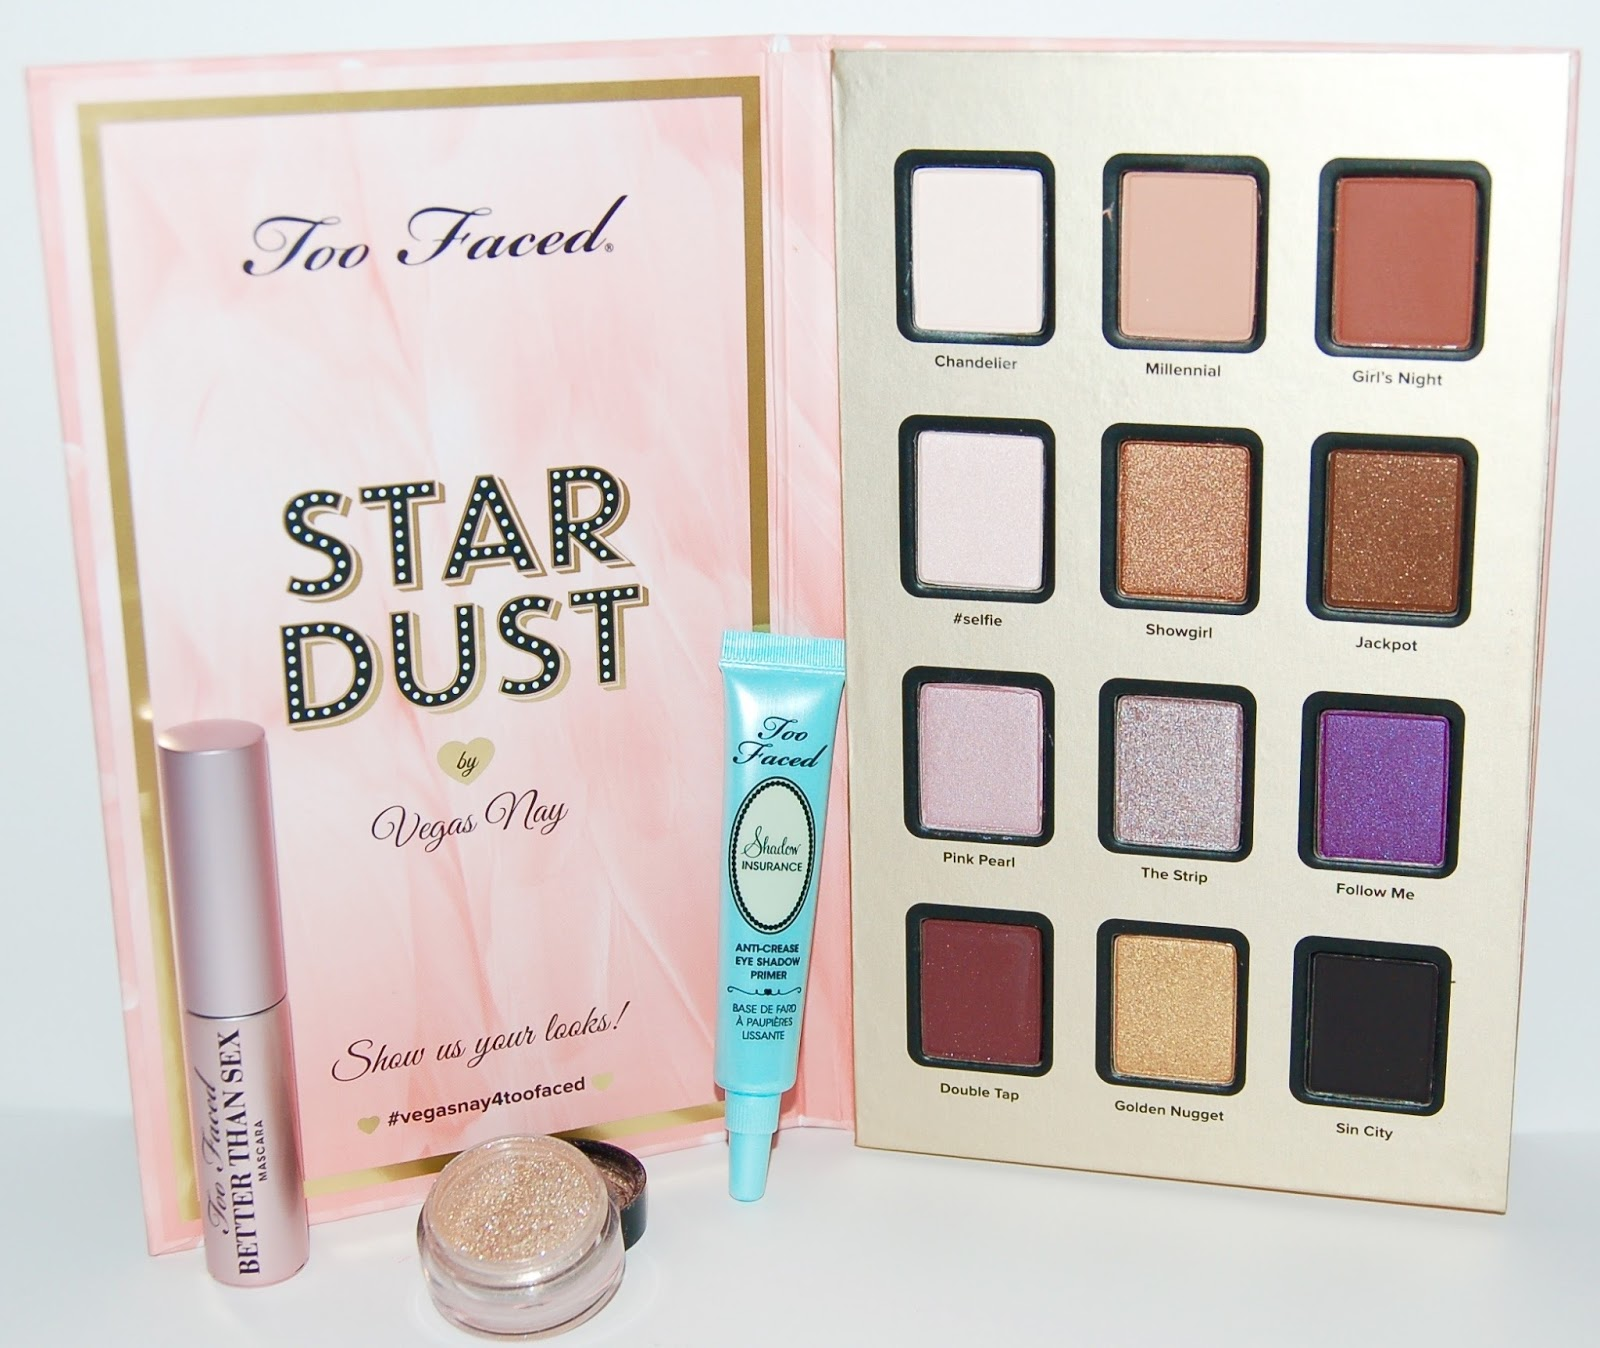 Too Faced Vegas Nay Stardust Eye Shadow Palette